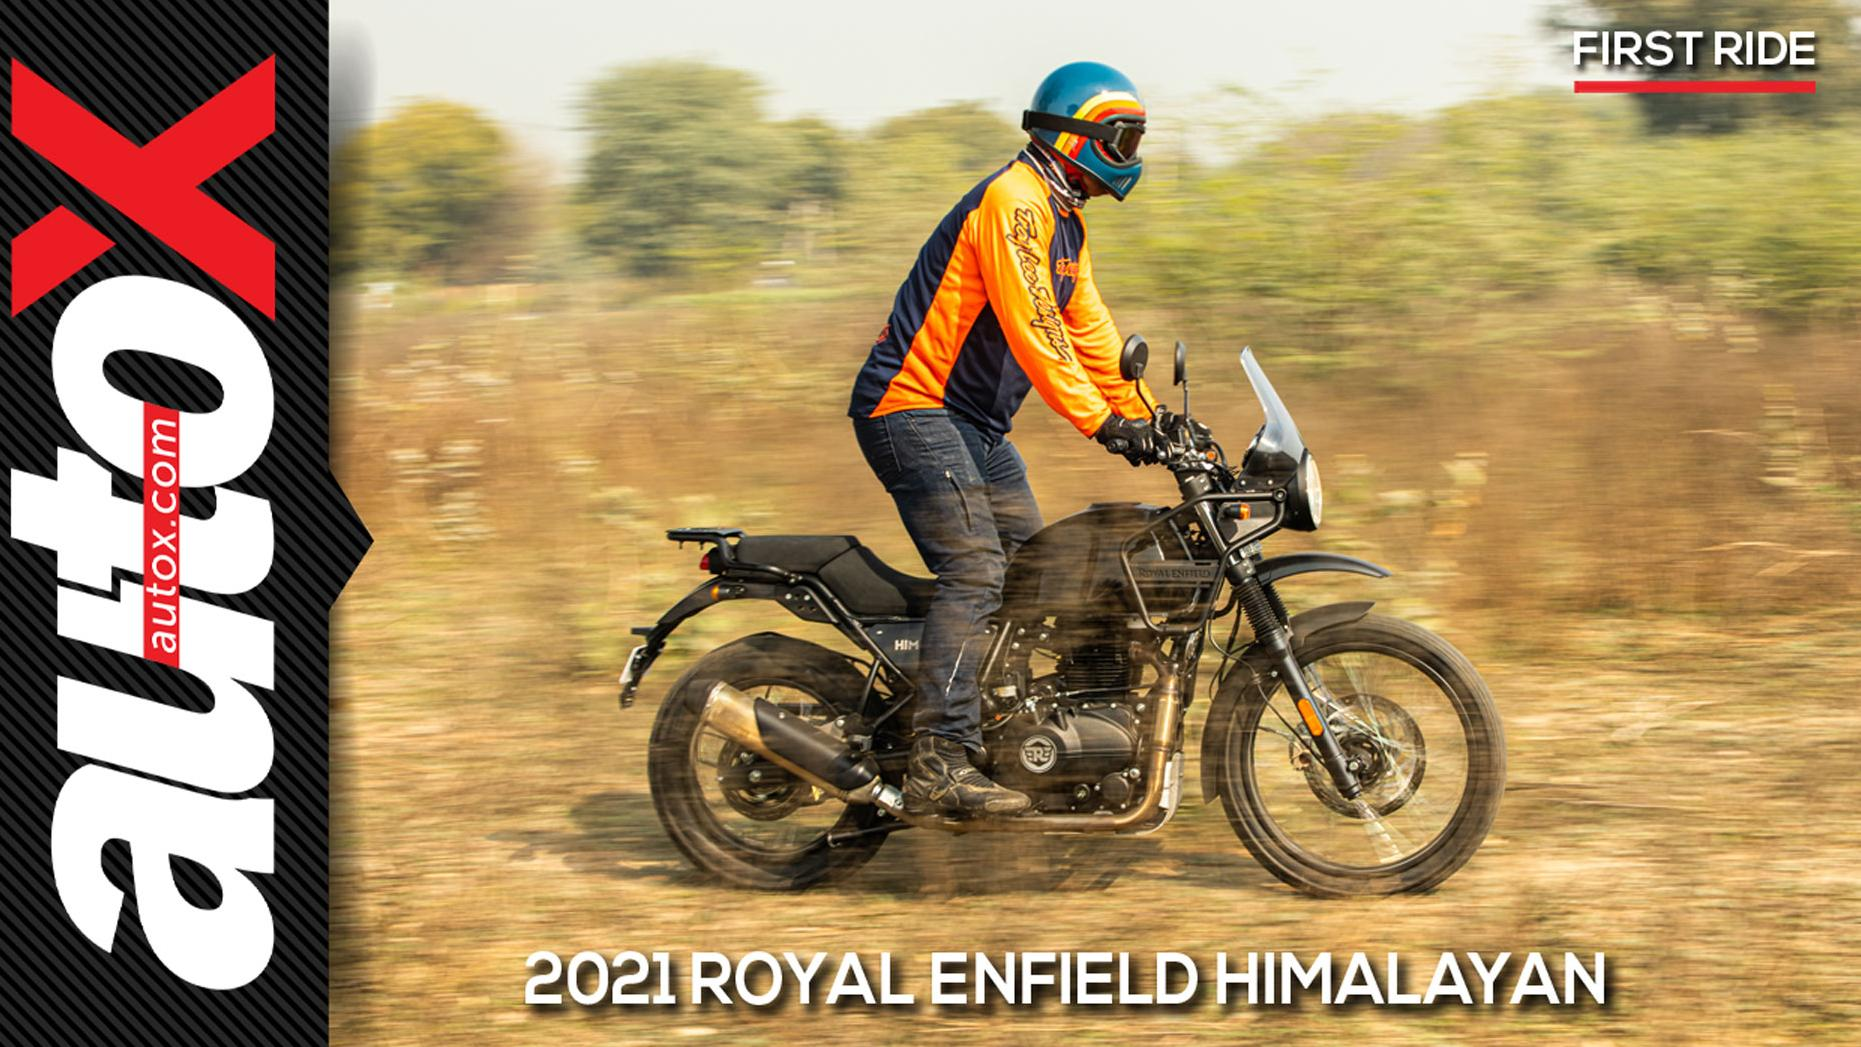 2021 RE Himalayan: New features make it even better | autoX